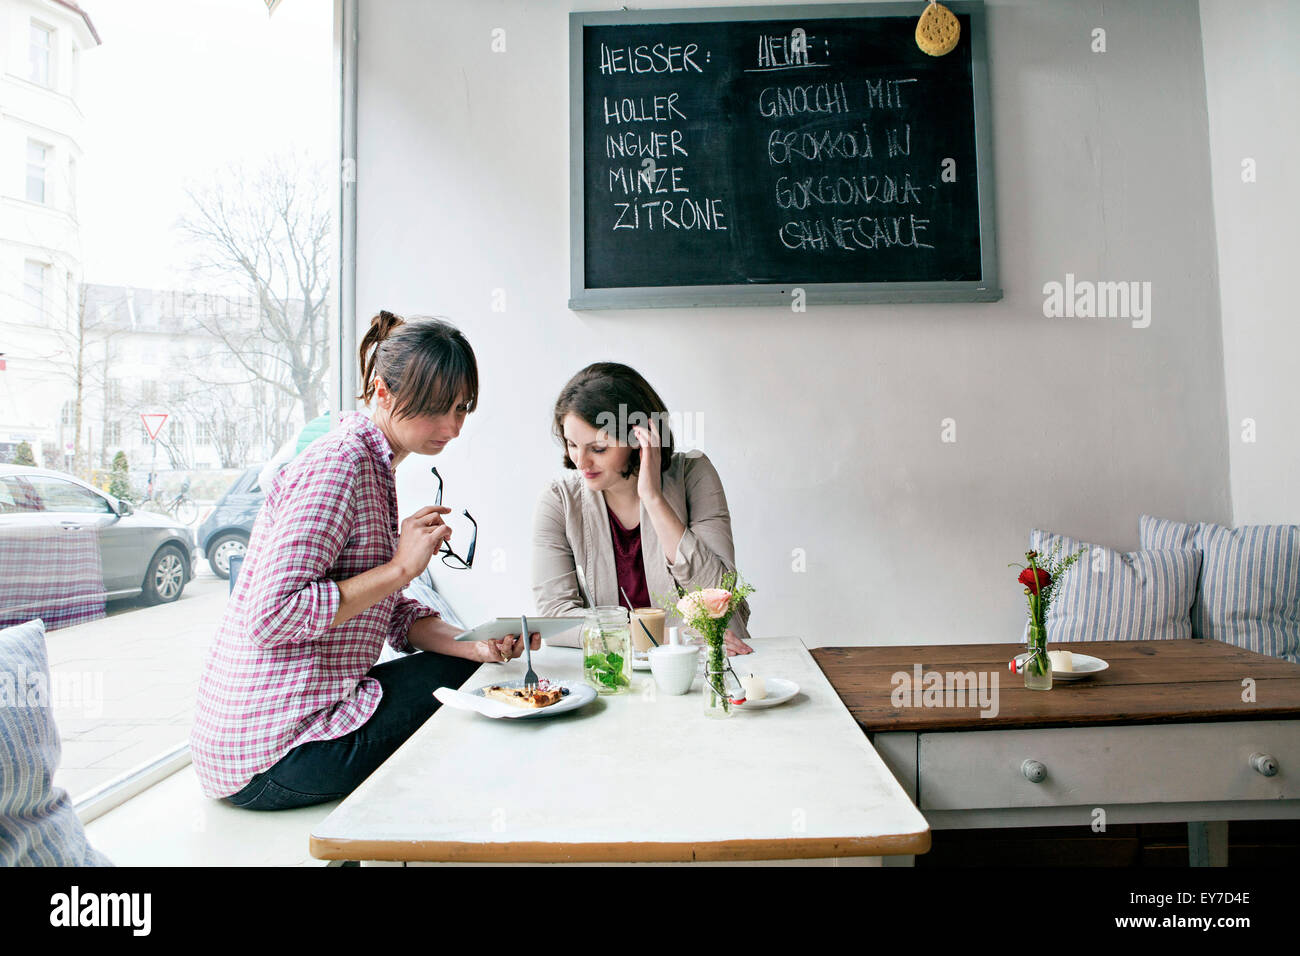 Guests in cafe - Stock Image